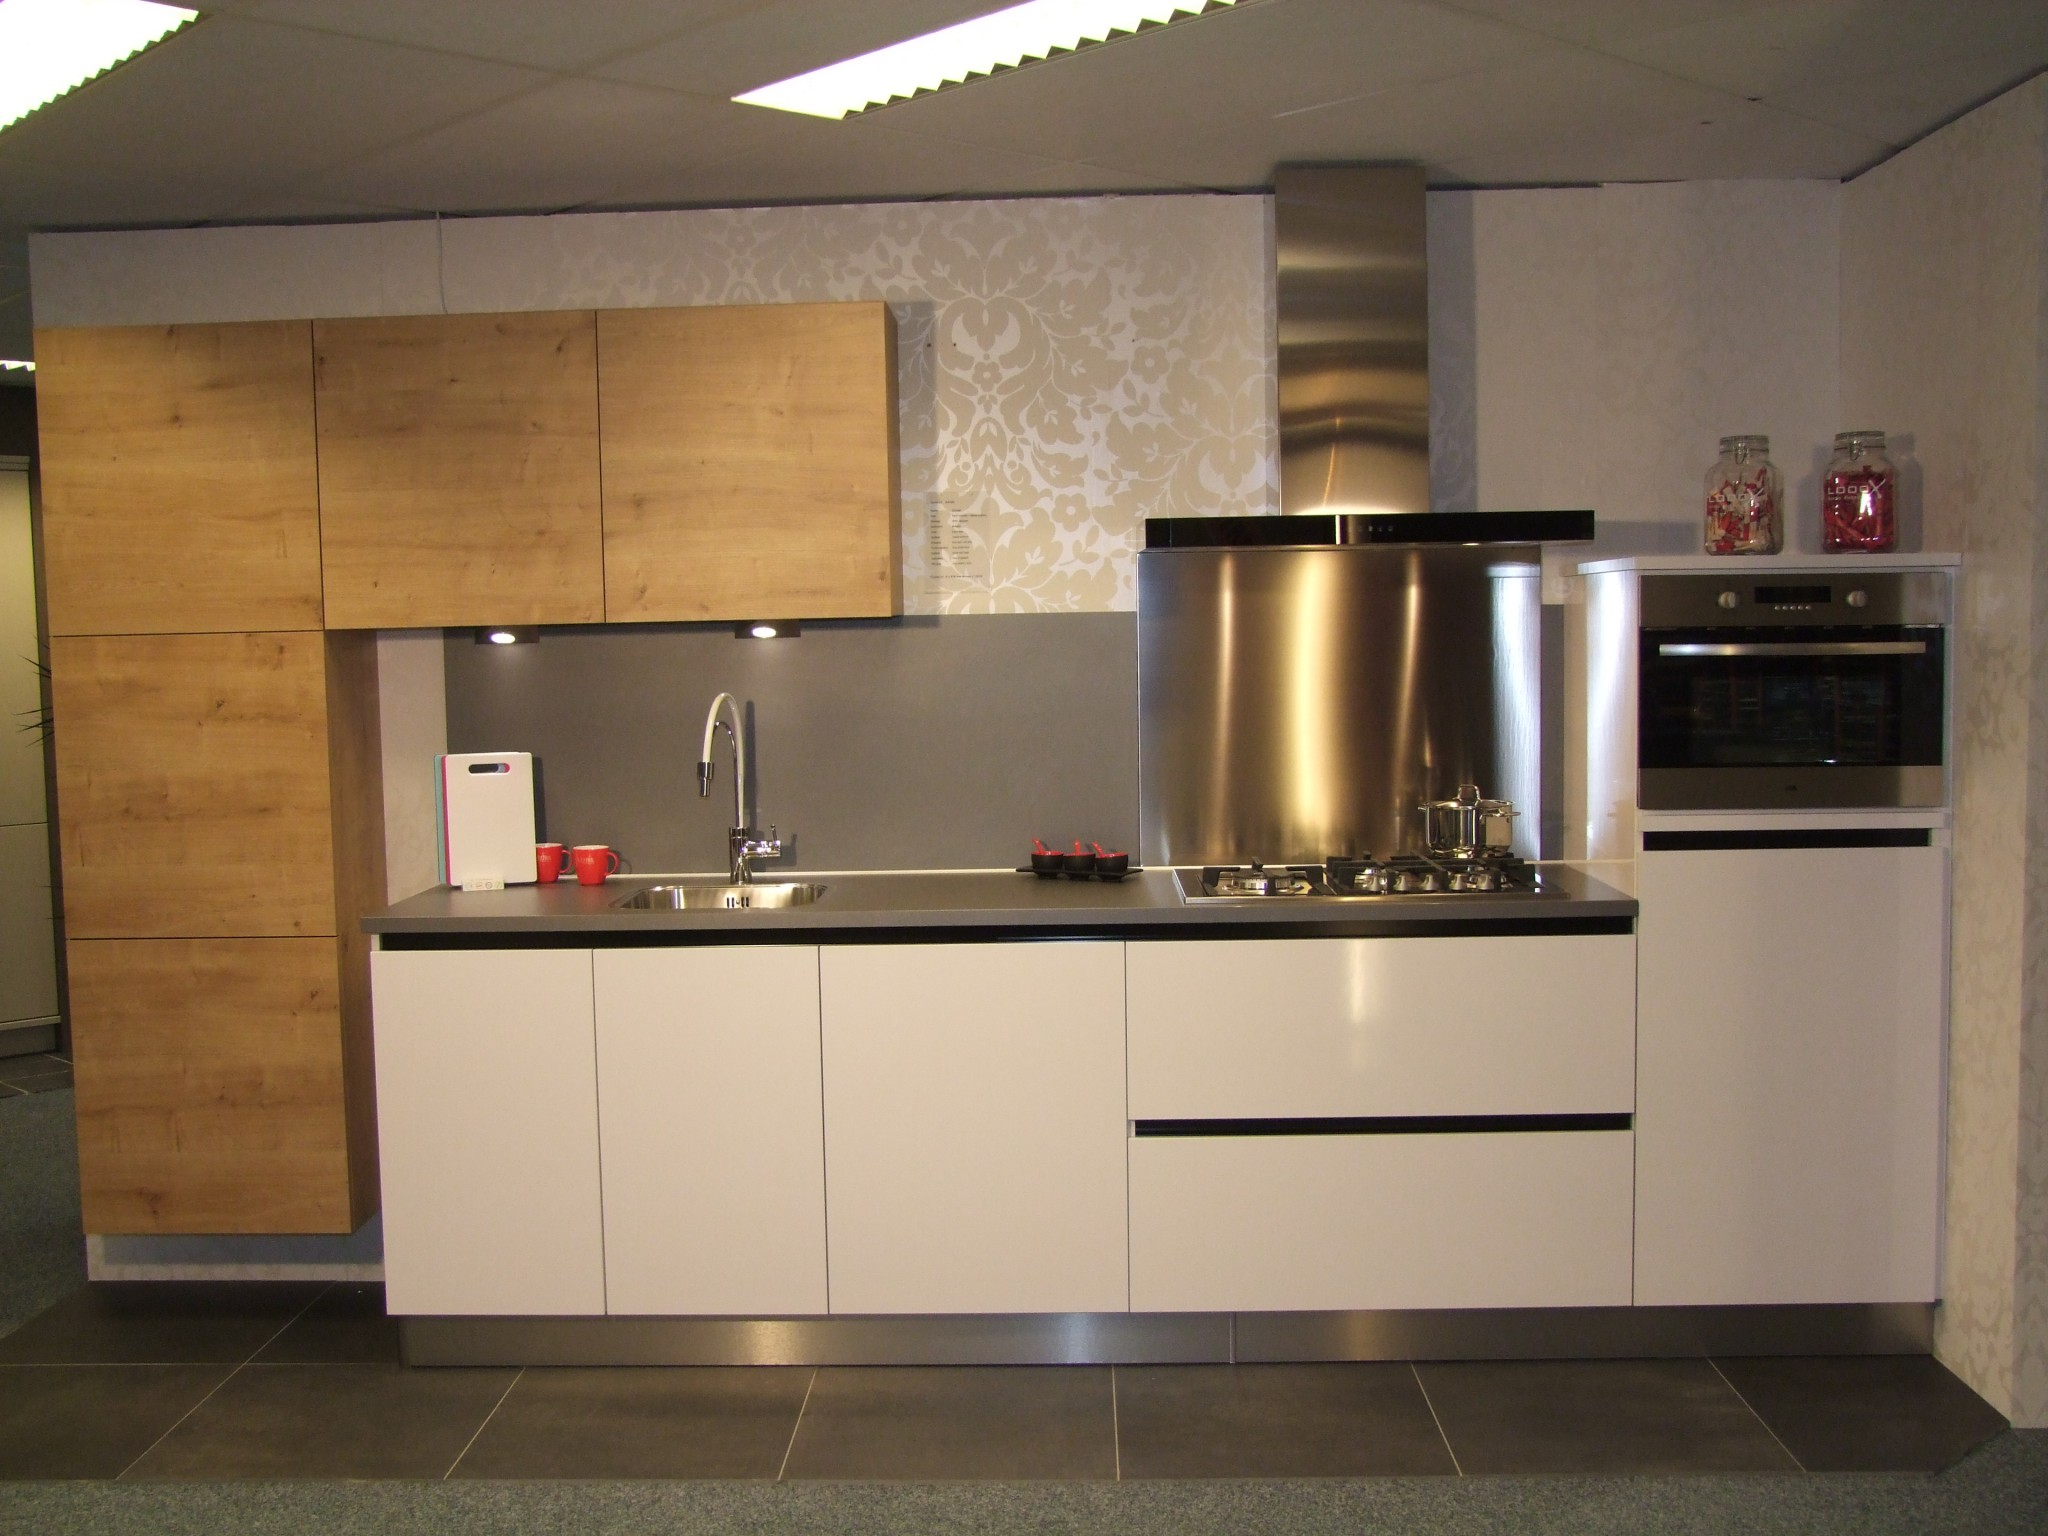 ... Hippe greeploze Schroder keuken - Kremer Keukens Showroom opruiming